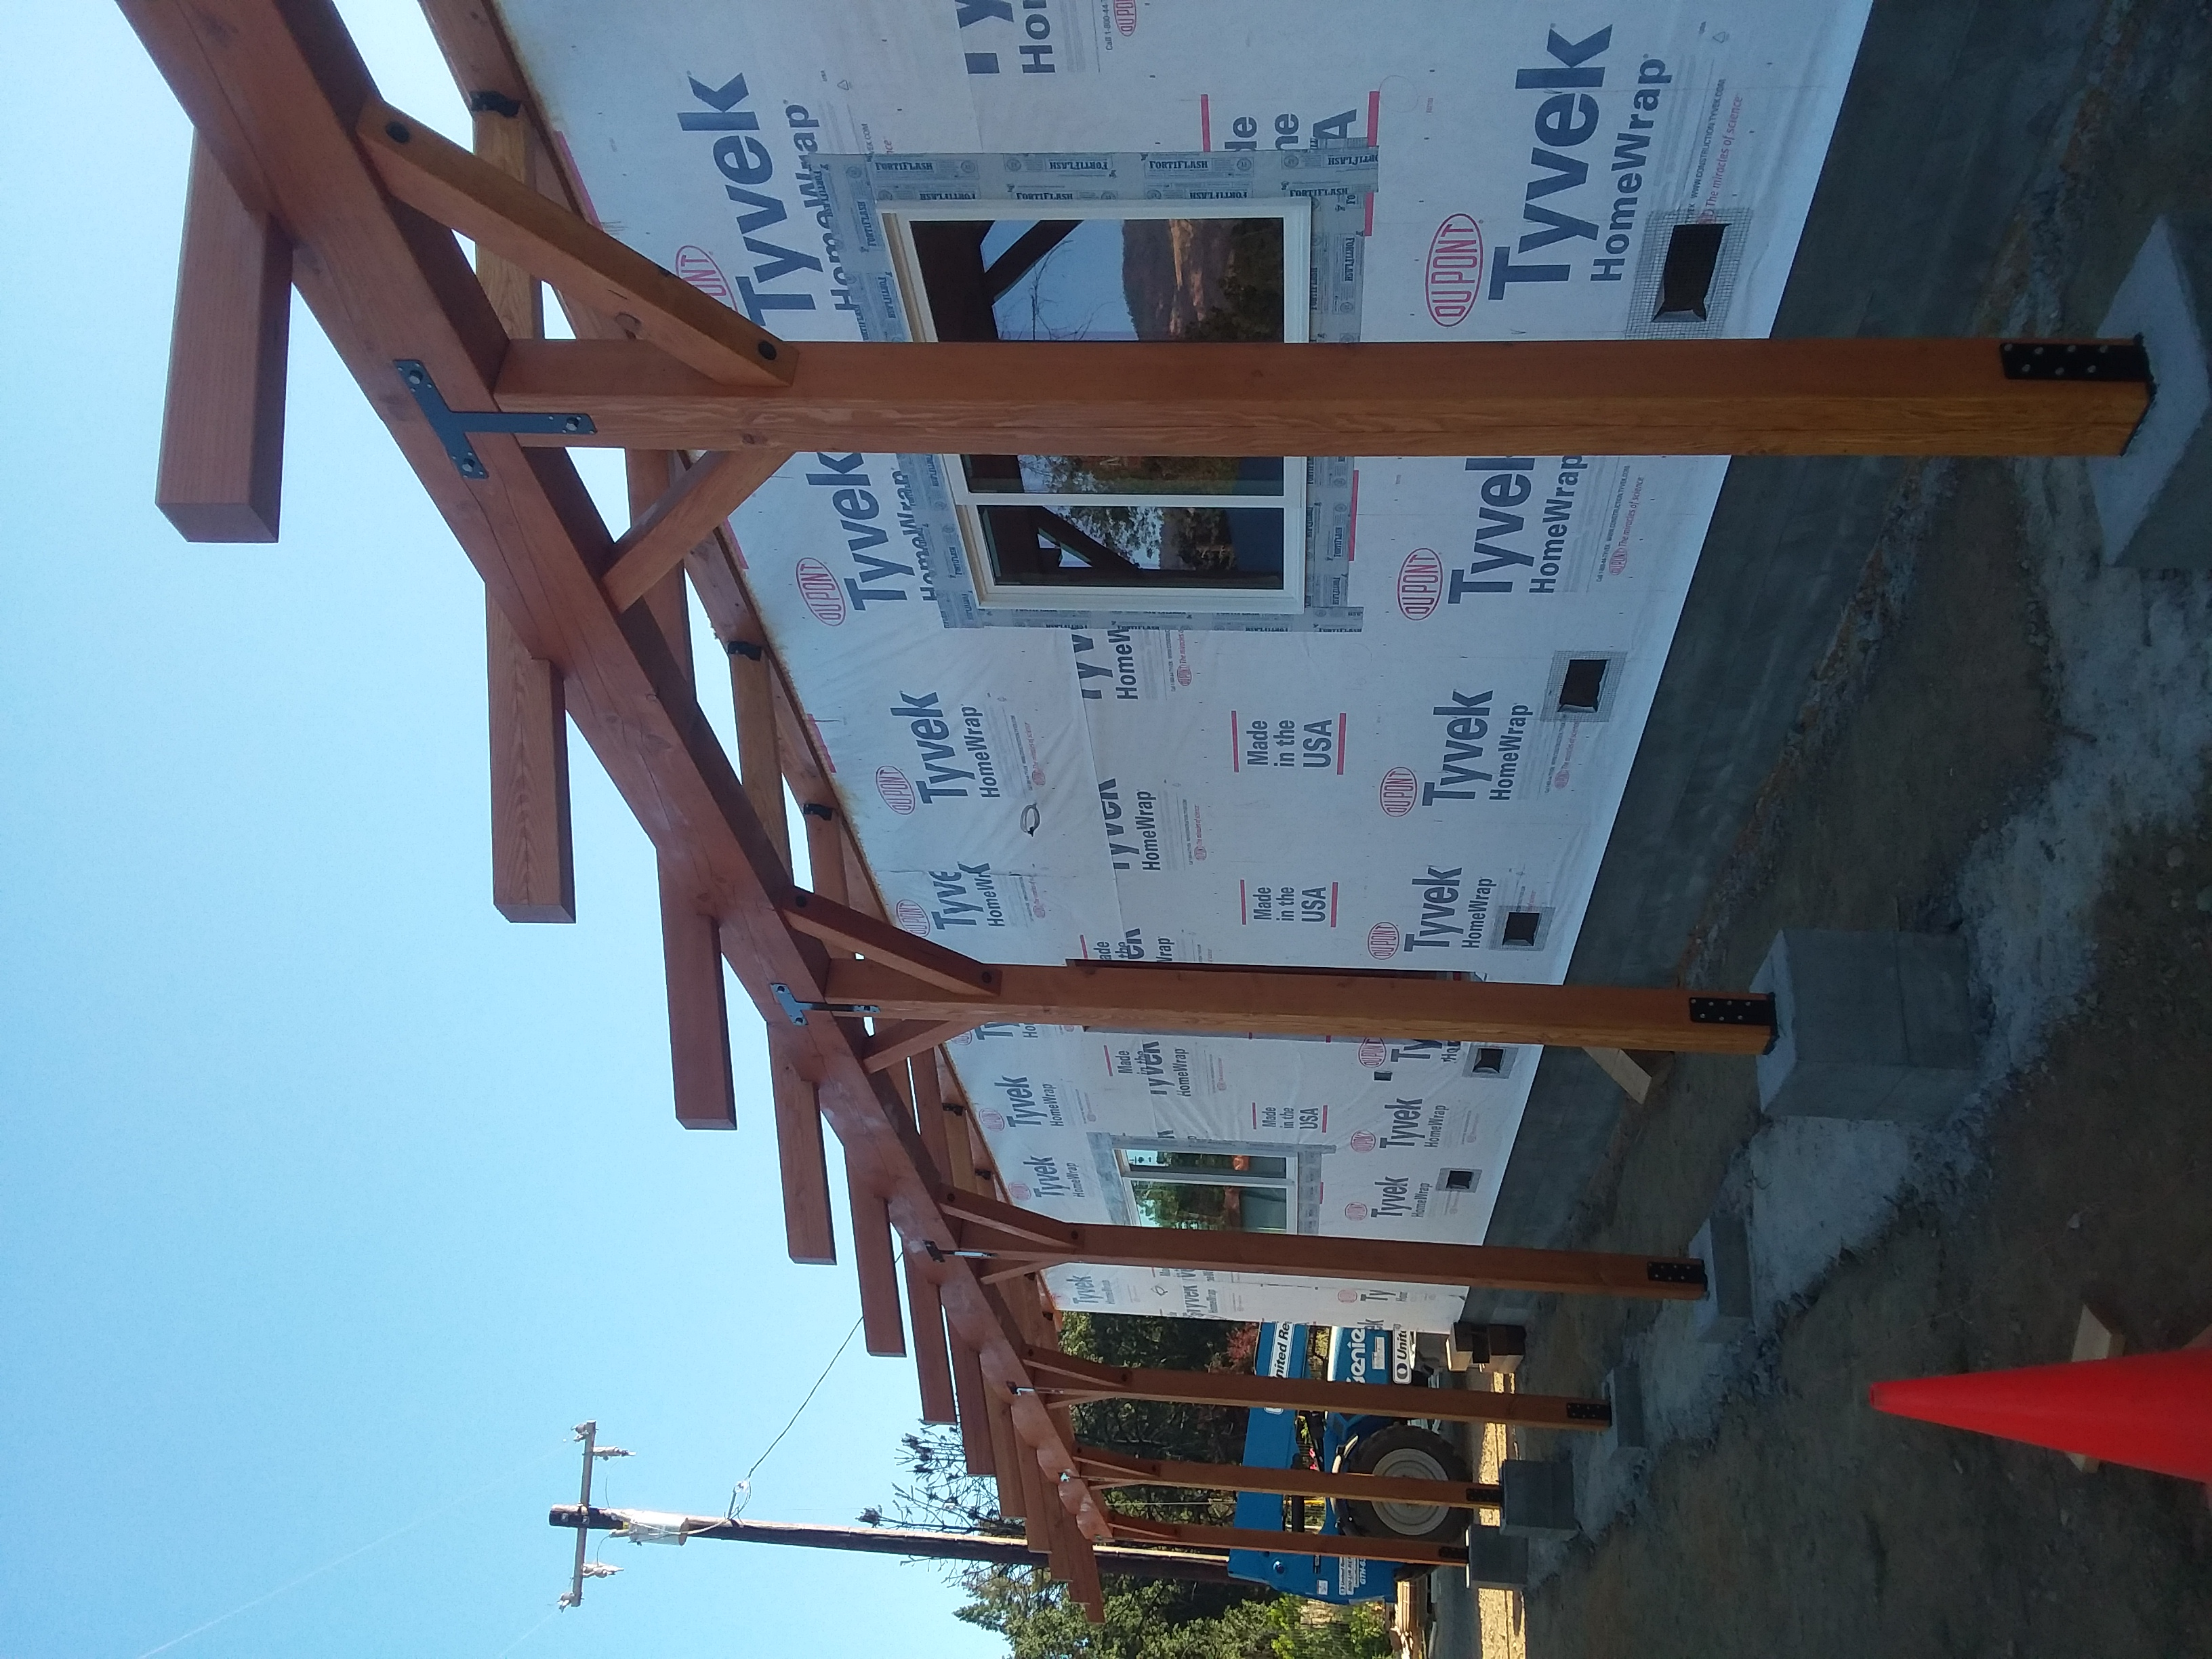 New home construction, Beam placement